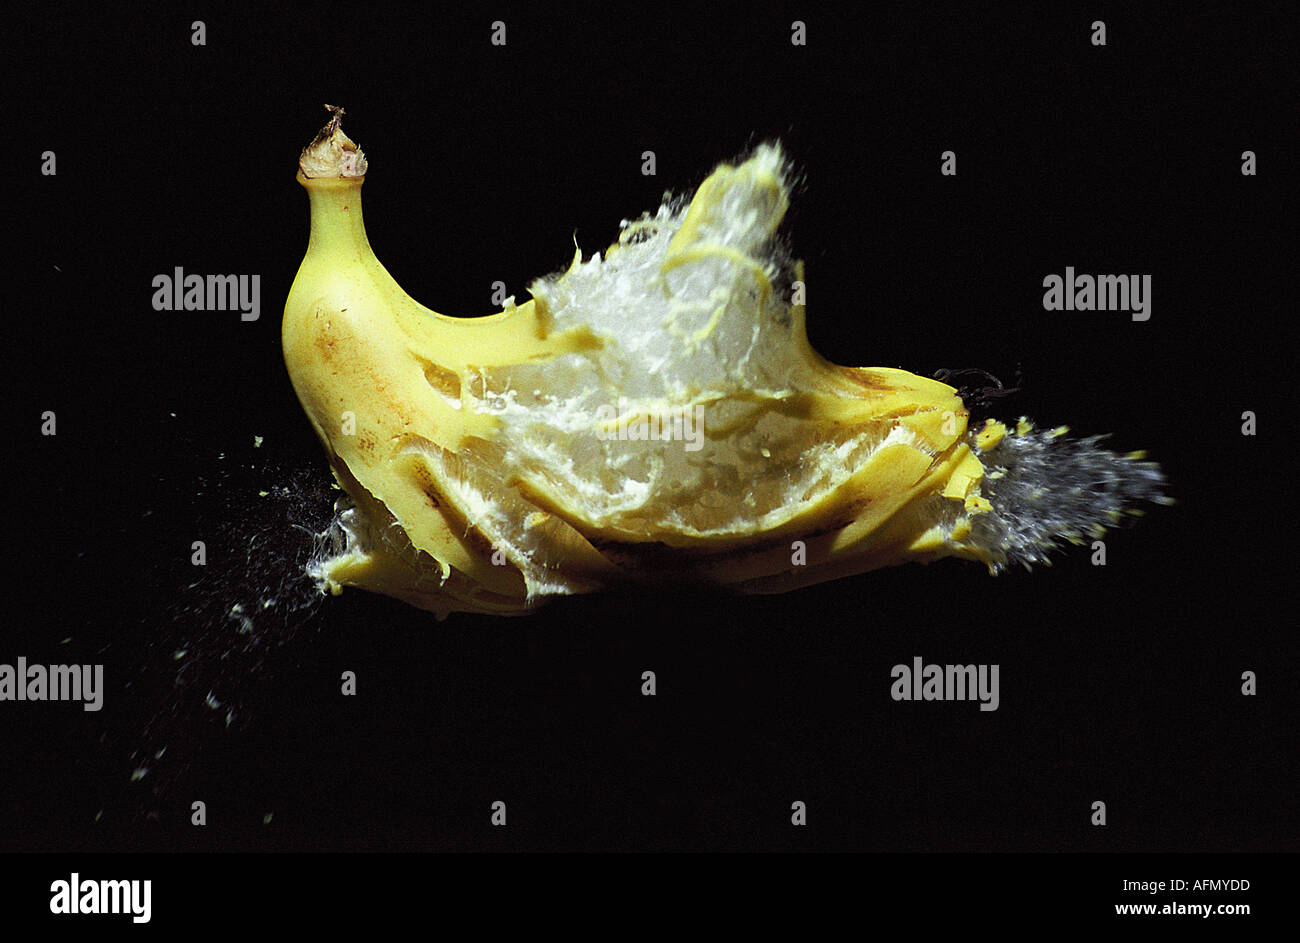 High speed photography showing a banana exploding on impact from 22 calibre rifle bullet - Stock Image